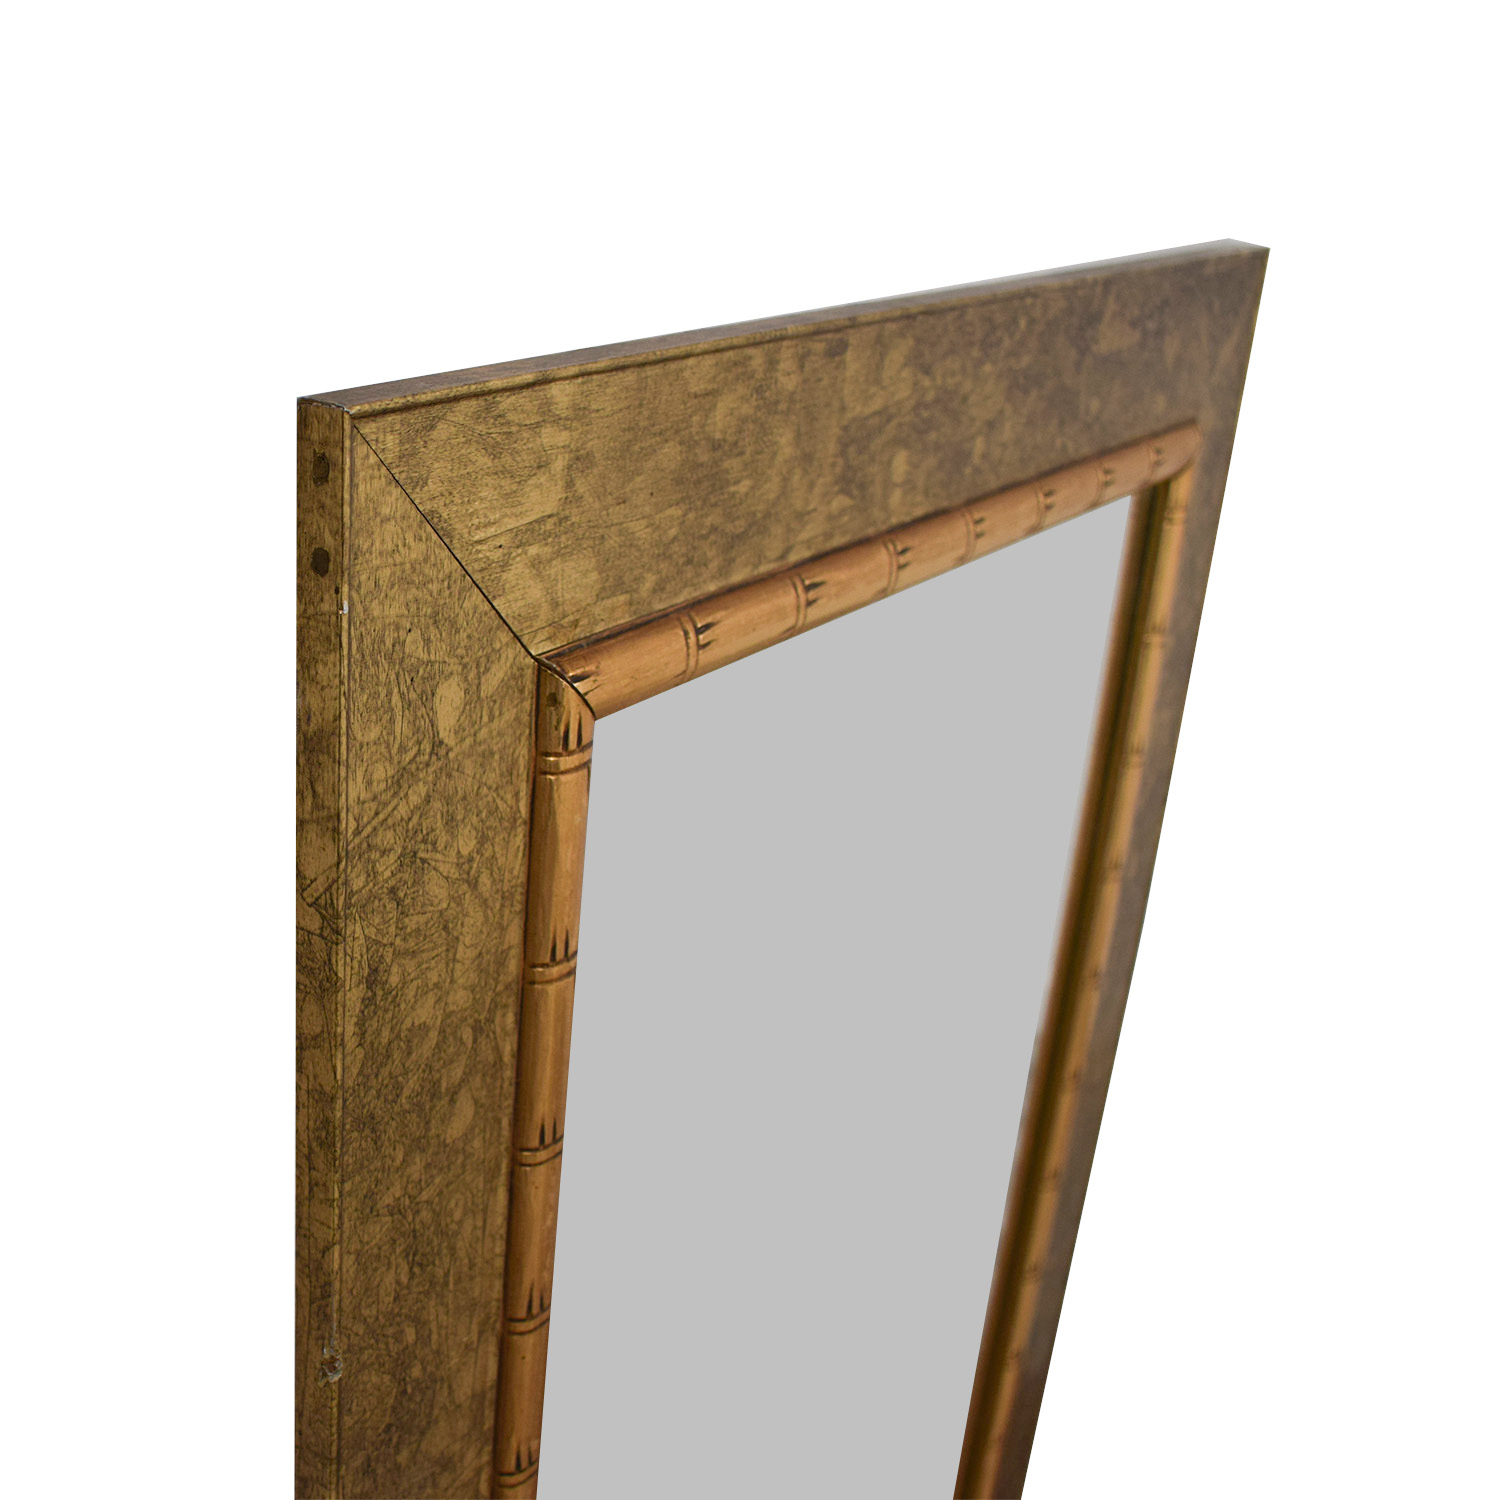 Turner Wall Accessories Turner Wall Accessories Gold Leaf Mirror coupon